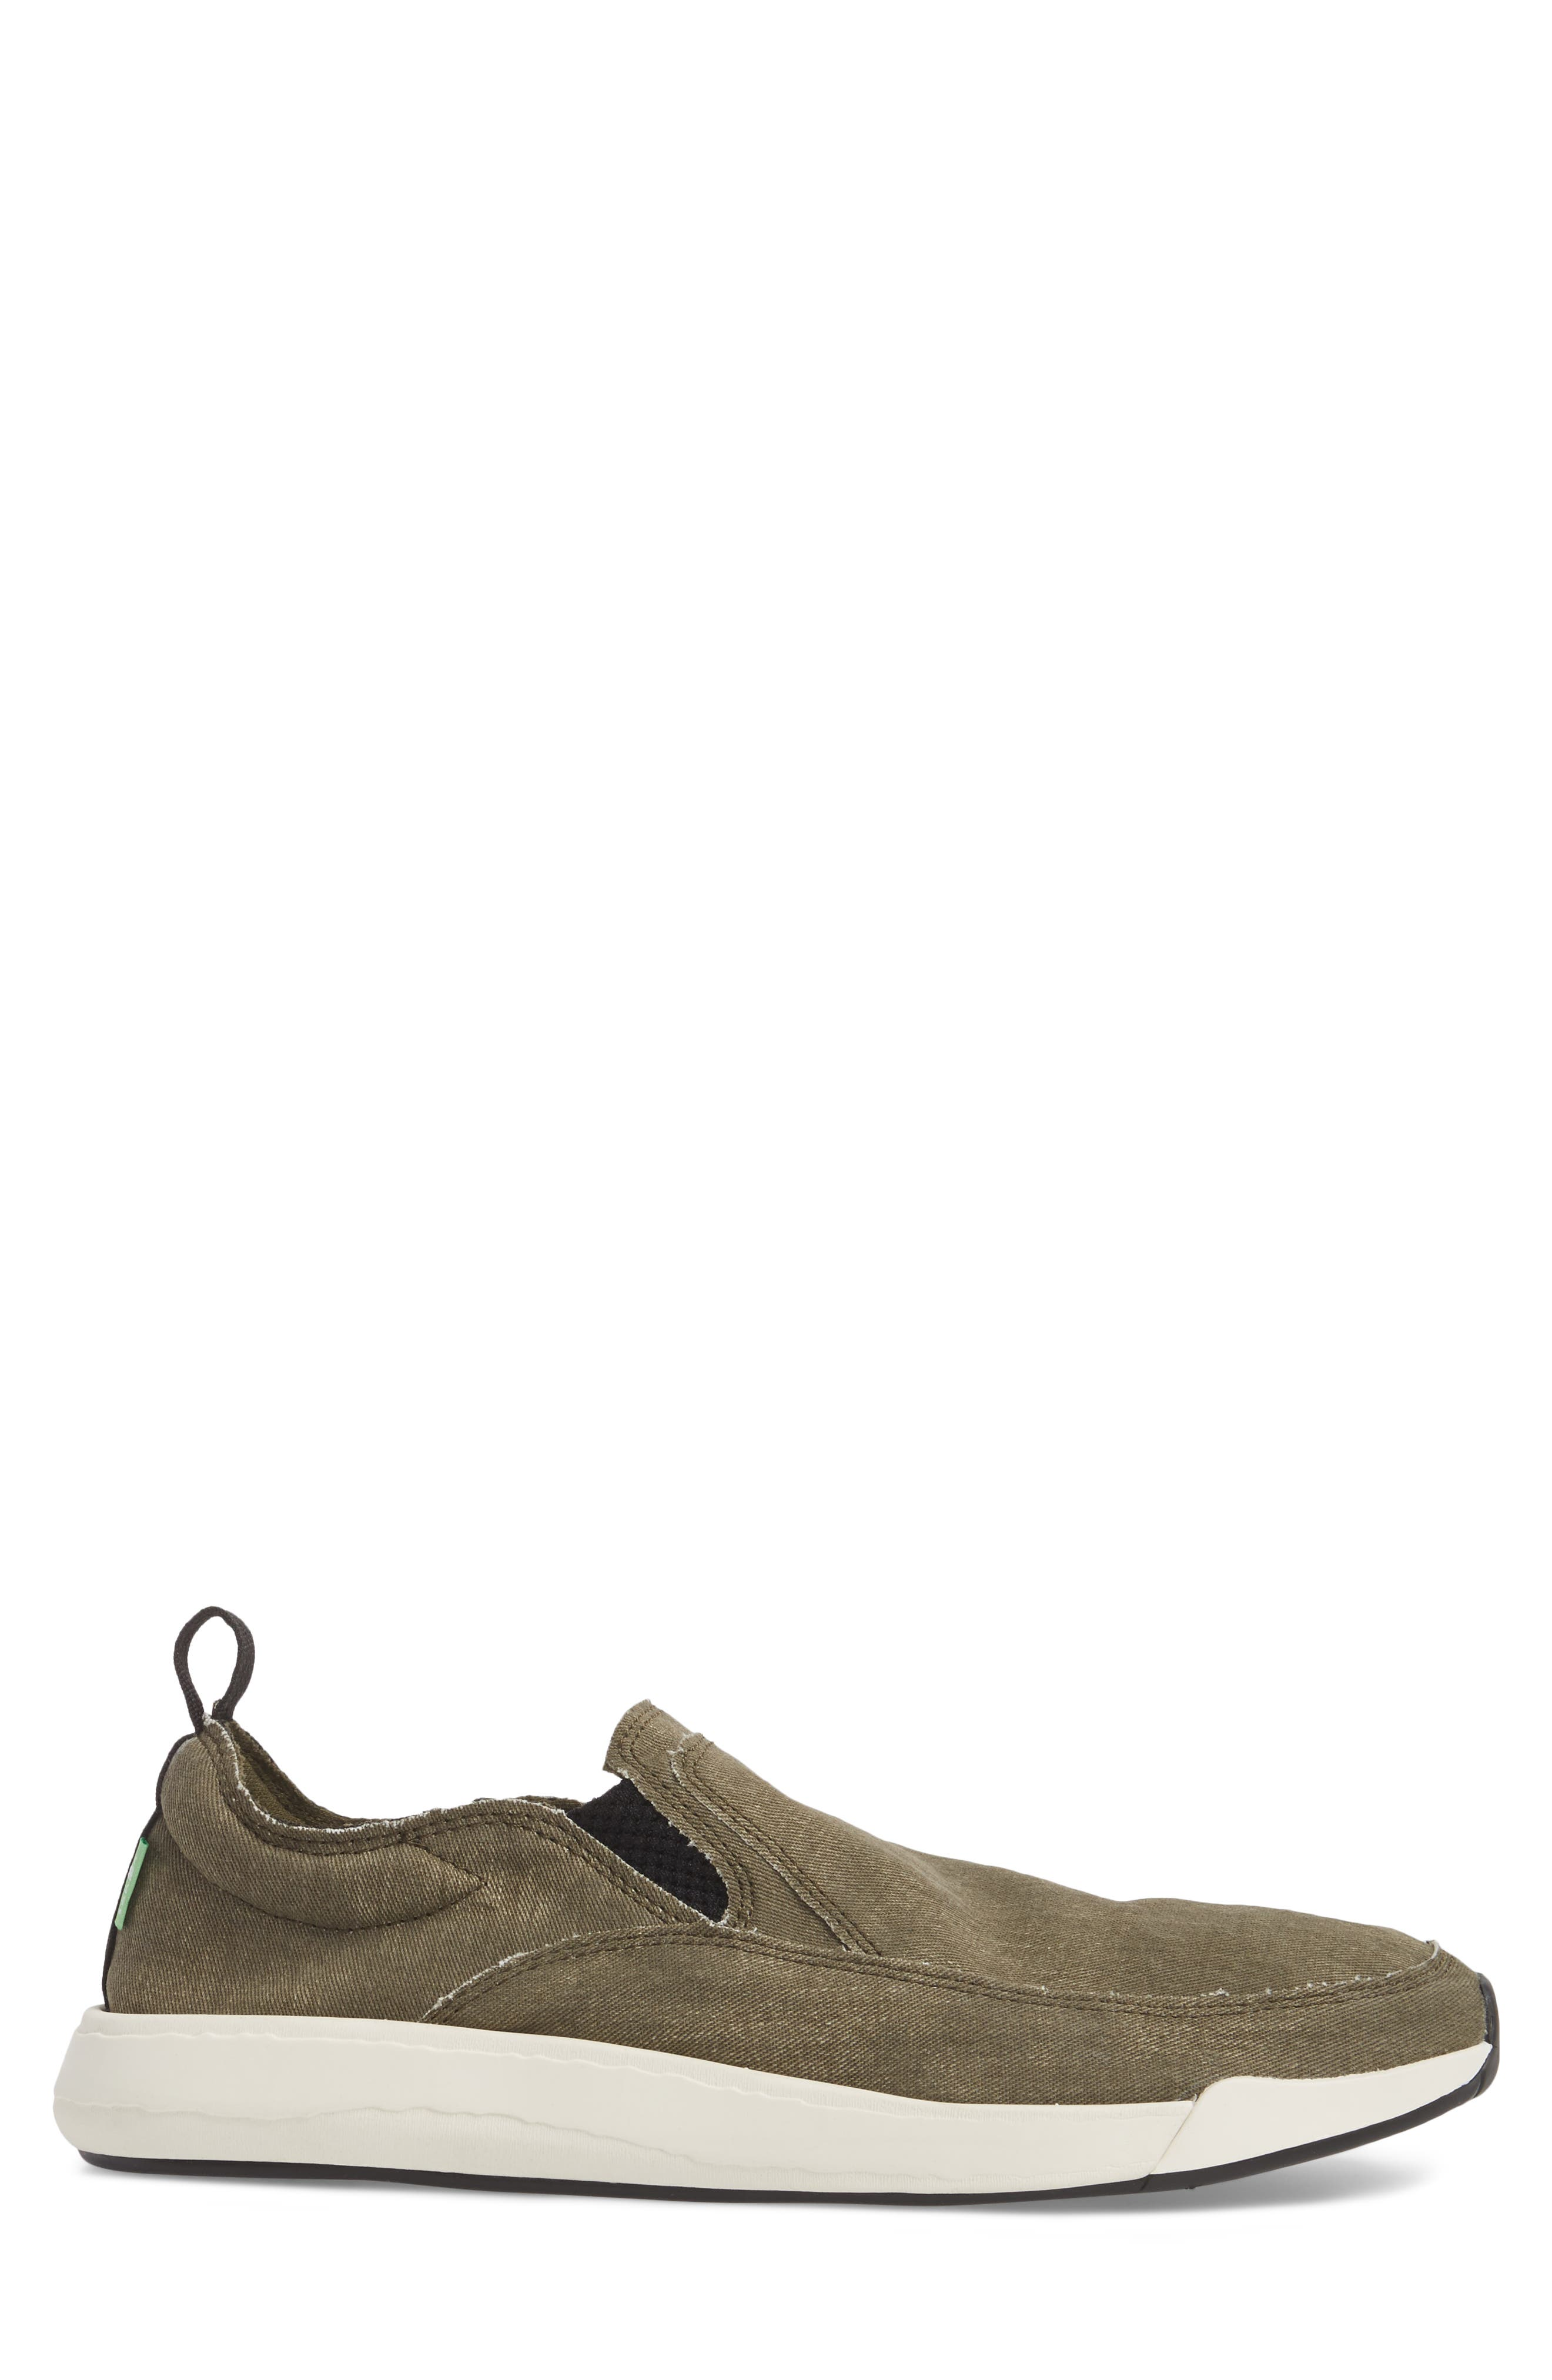 Chiba Quest Slip-On Sneaker,                             Alternate thumbnail 3, color,                             Olive